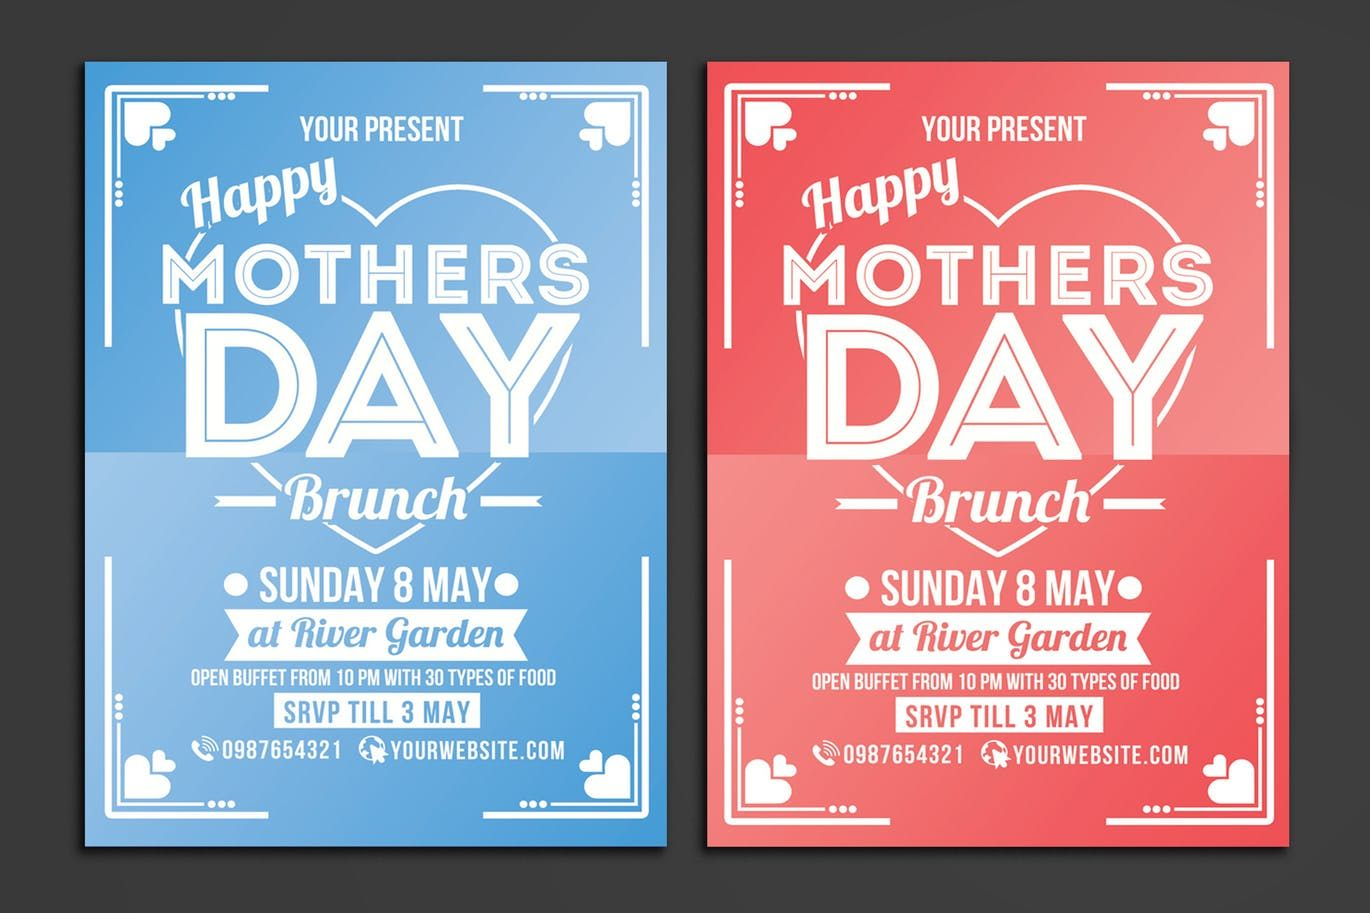 Poster design template psd - Mothers Day Brunch Flyer Poster Template Psd